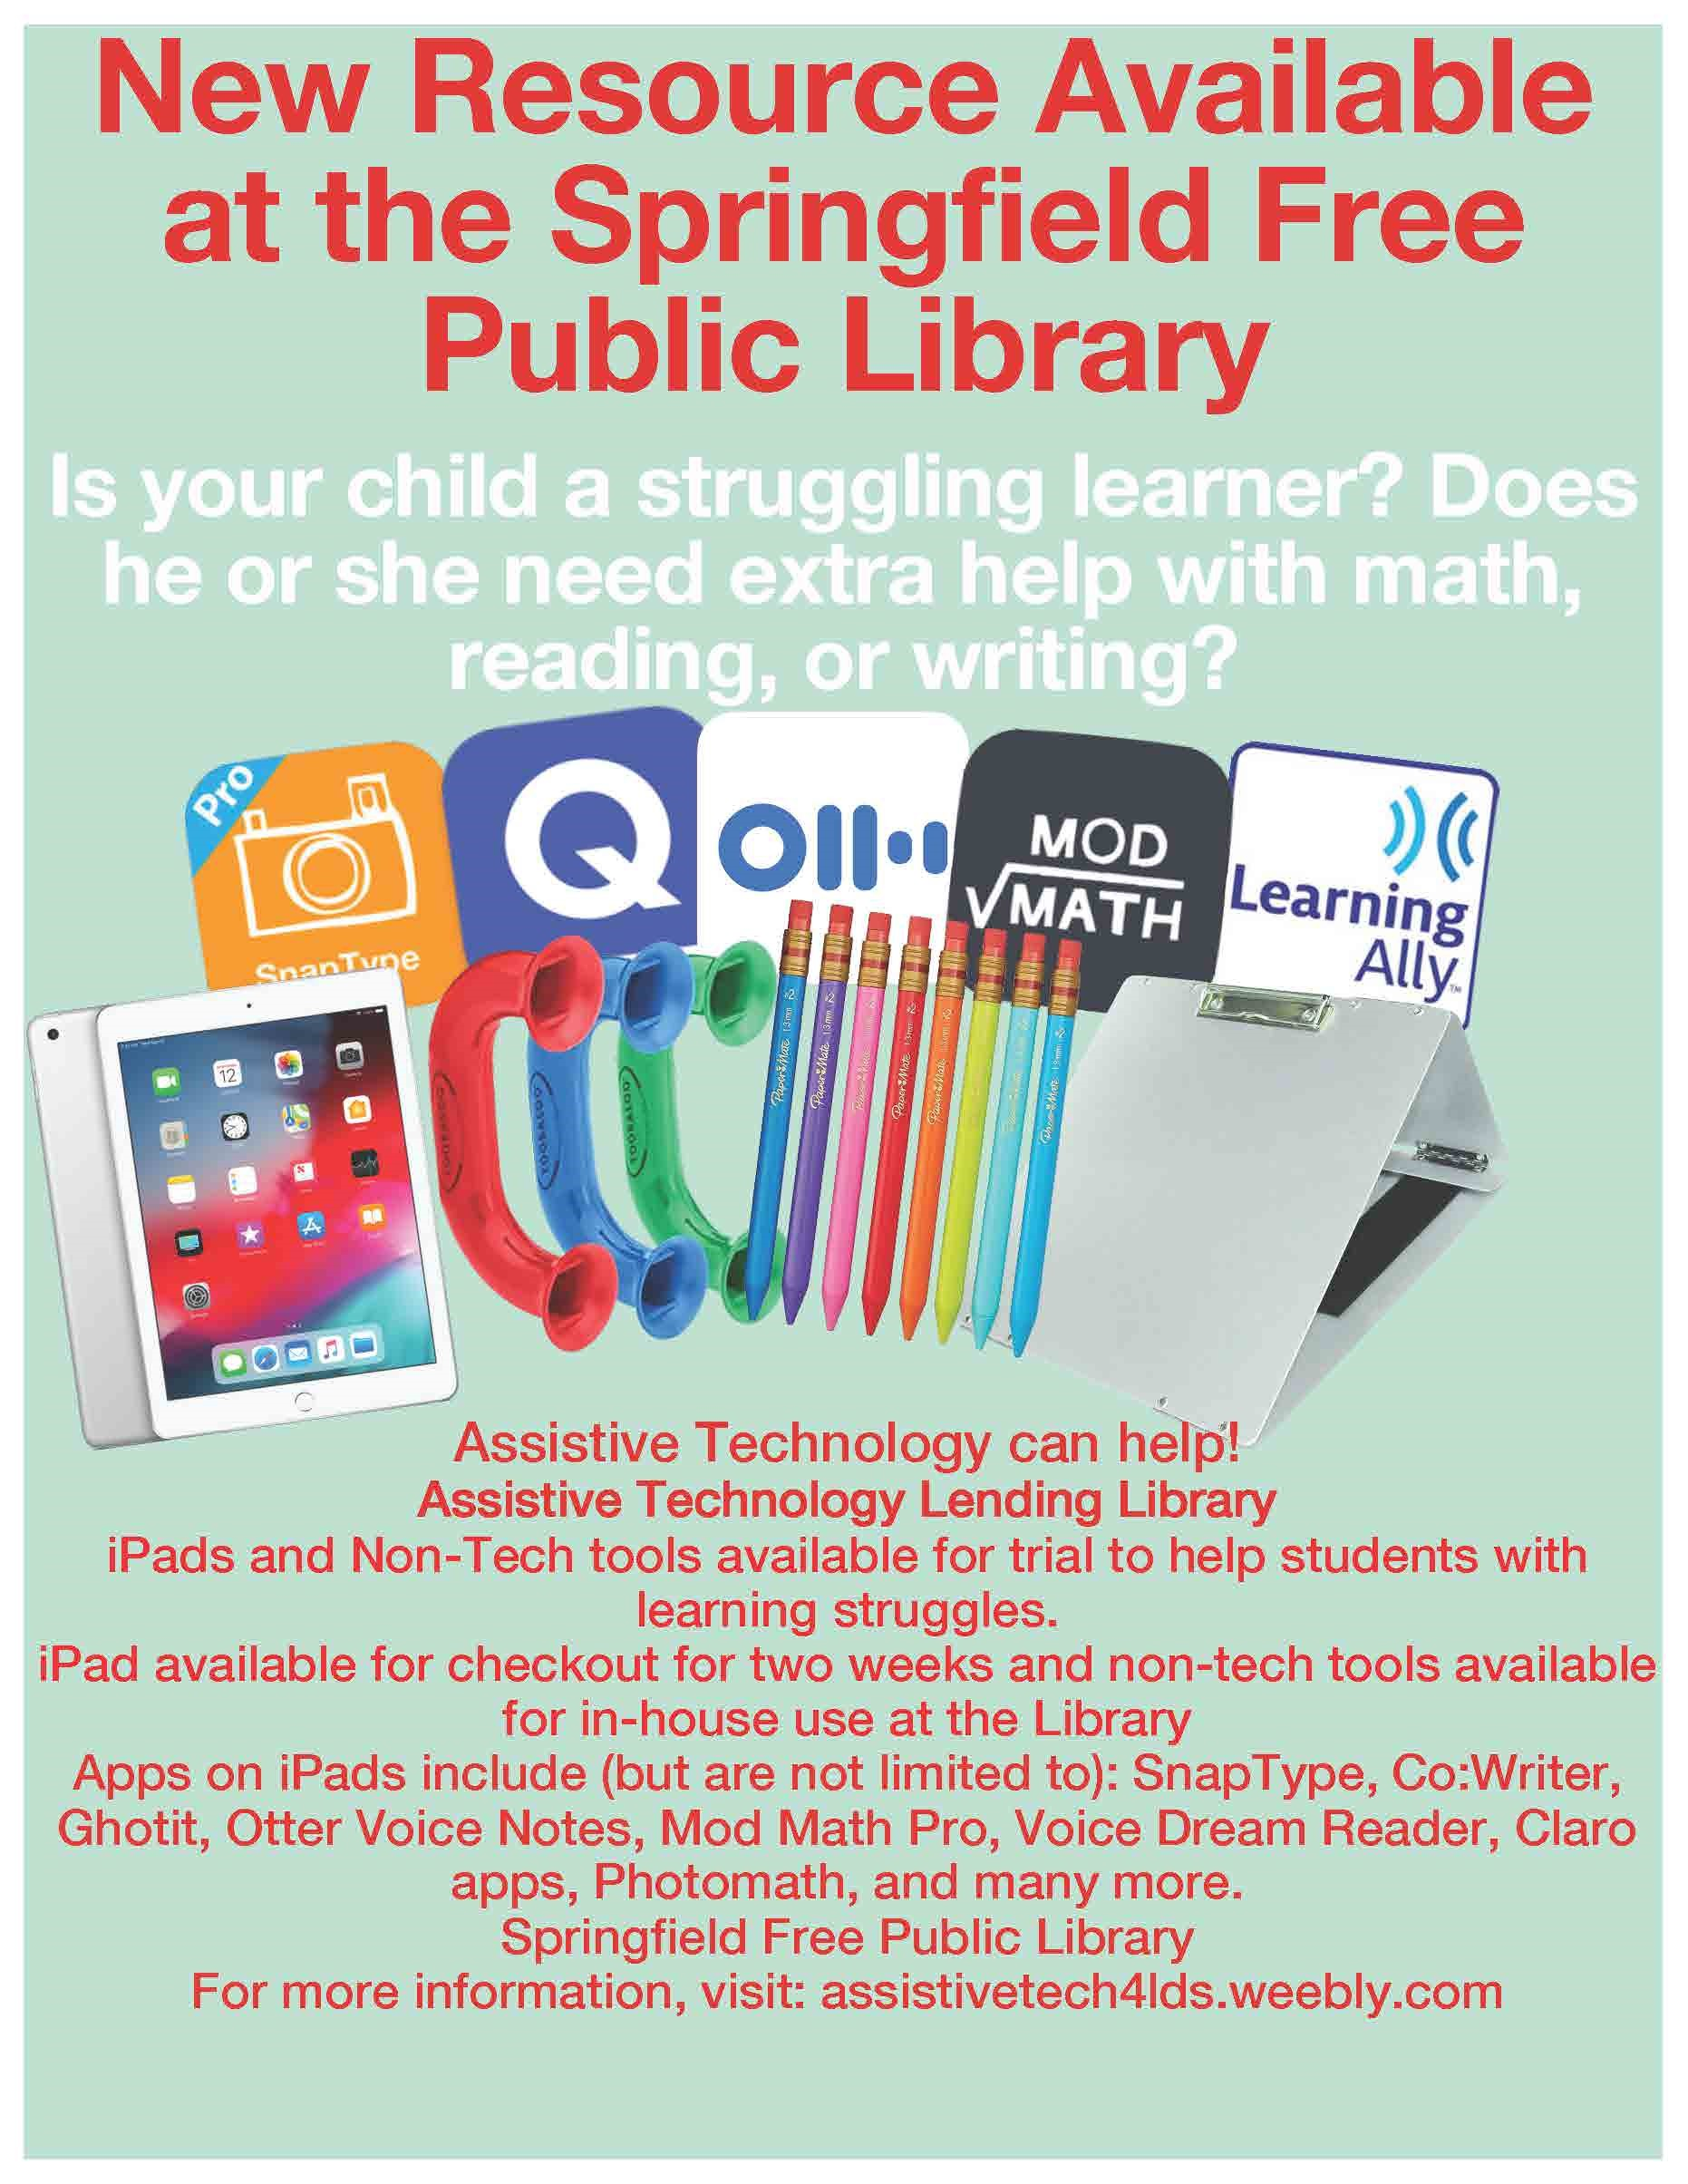 Assistive Technology Available at the Springfield Public Library Flyer